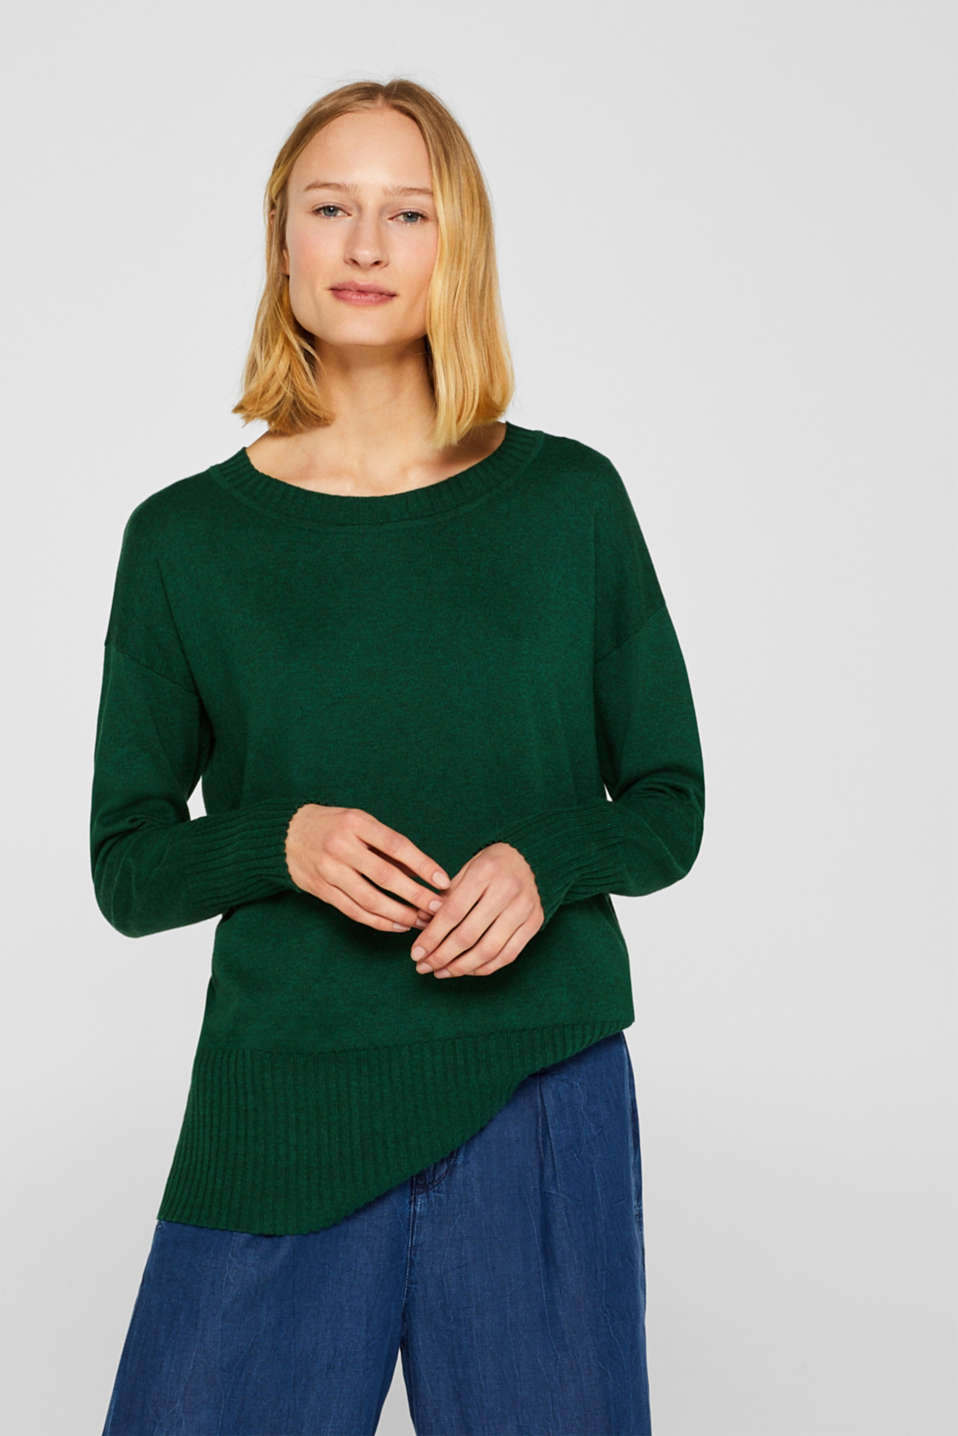 Esprit - Jumper with organic cotton, 100% cotton